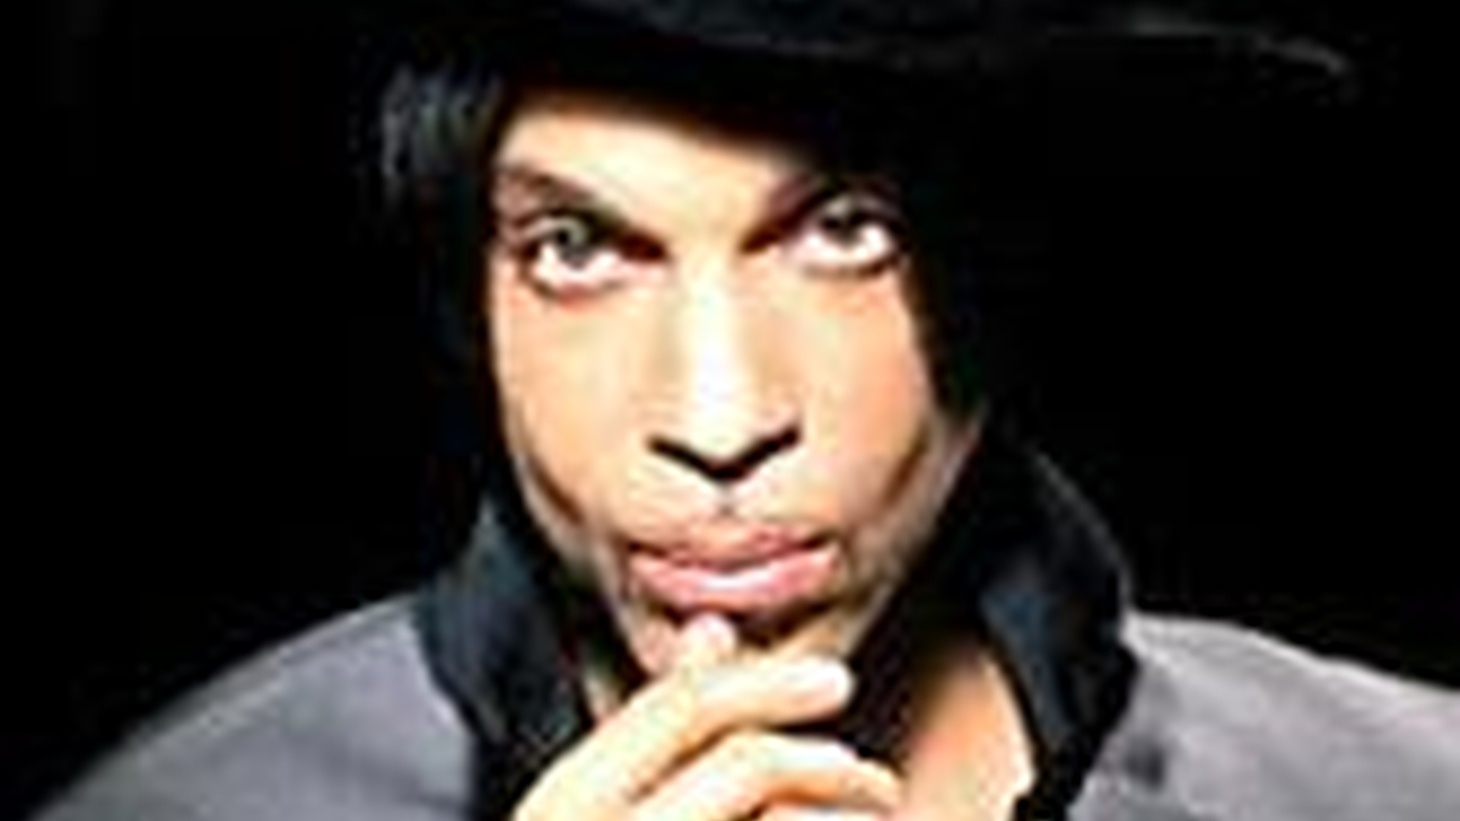 Prince, the irrepressible Prince. He defies convention at every turn. His latest twist sent the UK record business into a tailspin. For the launch of his new album, Prince broke his own street date to give millions of copies of his new CD away...